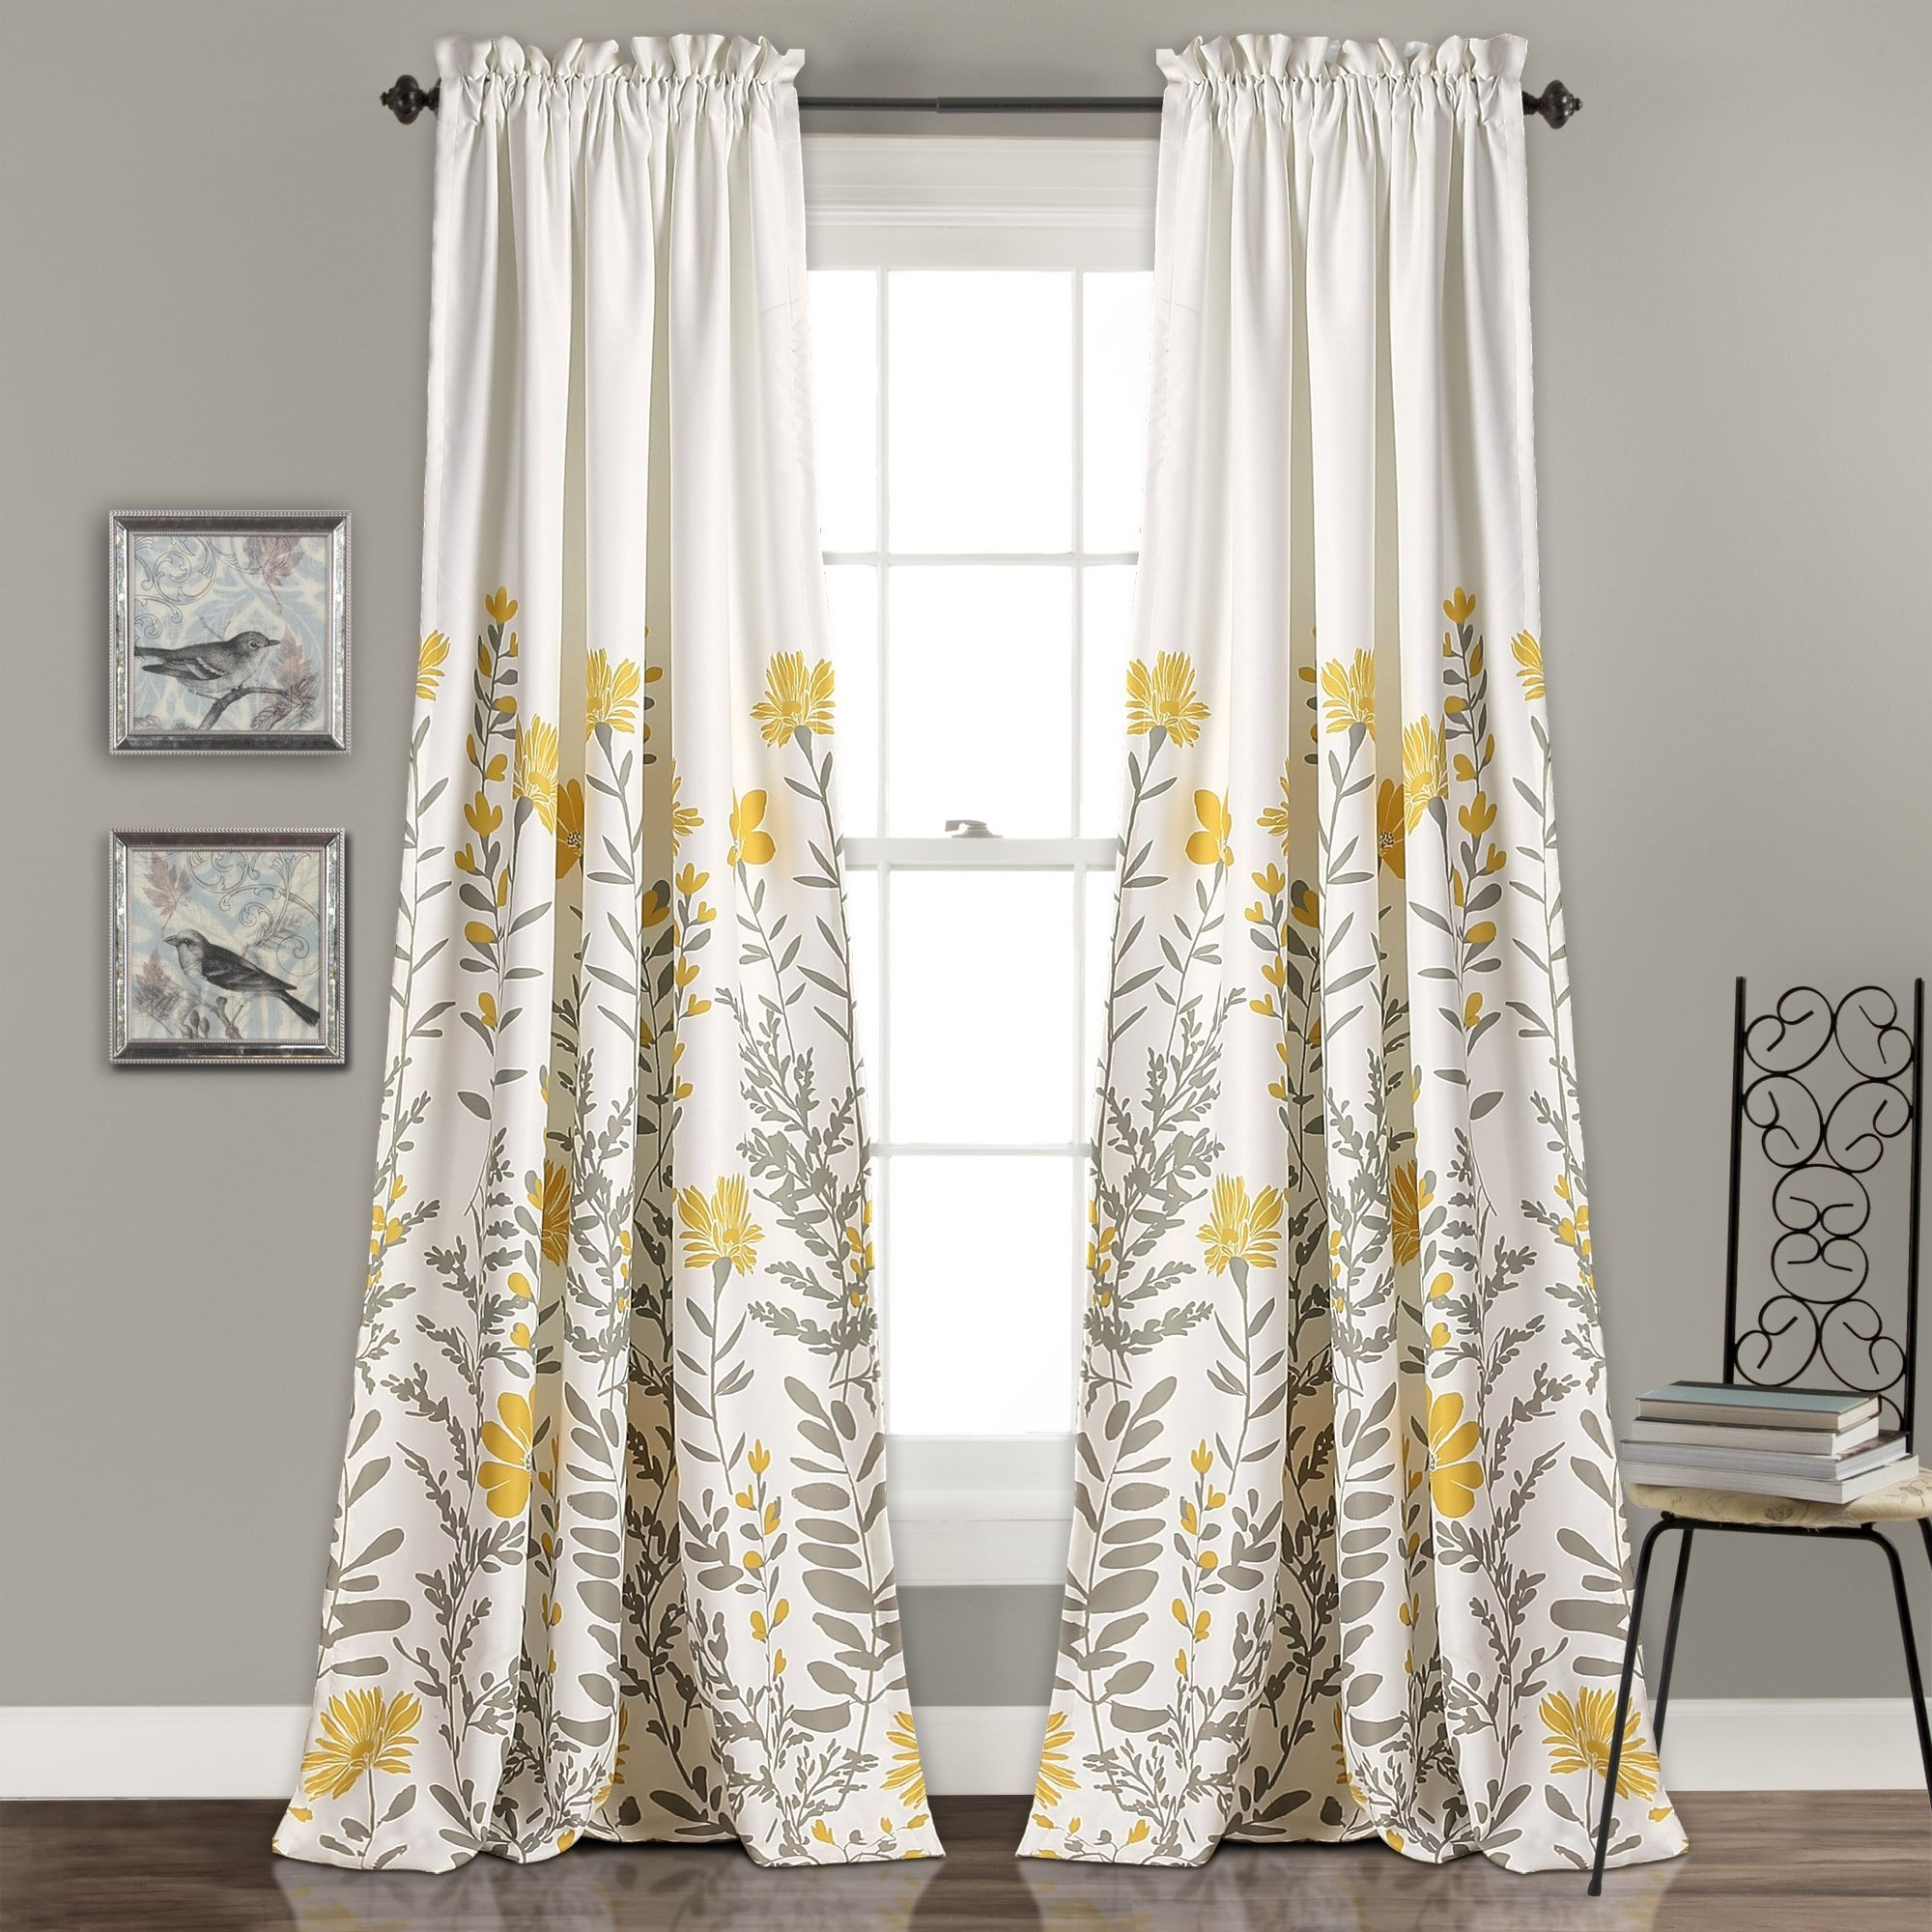 "Maison Rouge Villon Room Darkening Curtain Panel Pair (84"" X regarding Floral Pattern Room Darkening Window Curtain Panel Pairs (Image 15 of 20)"